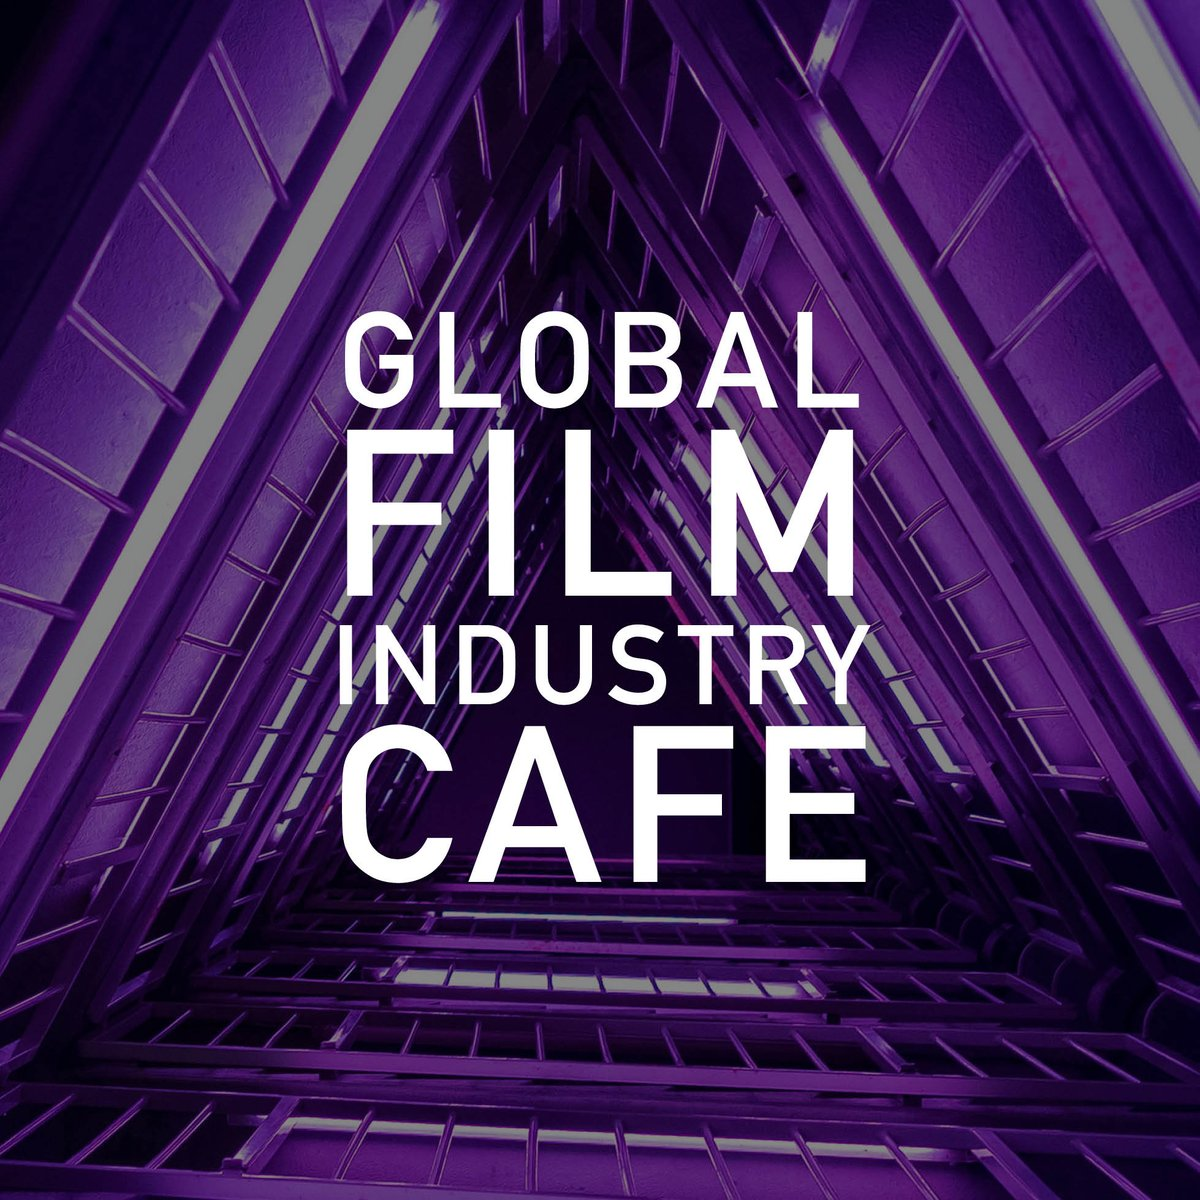 Come and join us! http://ow.ly/V4VM50AOsqK #film #filmmakers #screenwriters #screenwriting #producer #producers #actors #actor #directorpic.twitter.com/wHkdO5w4x1